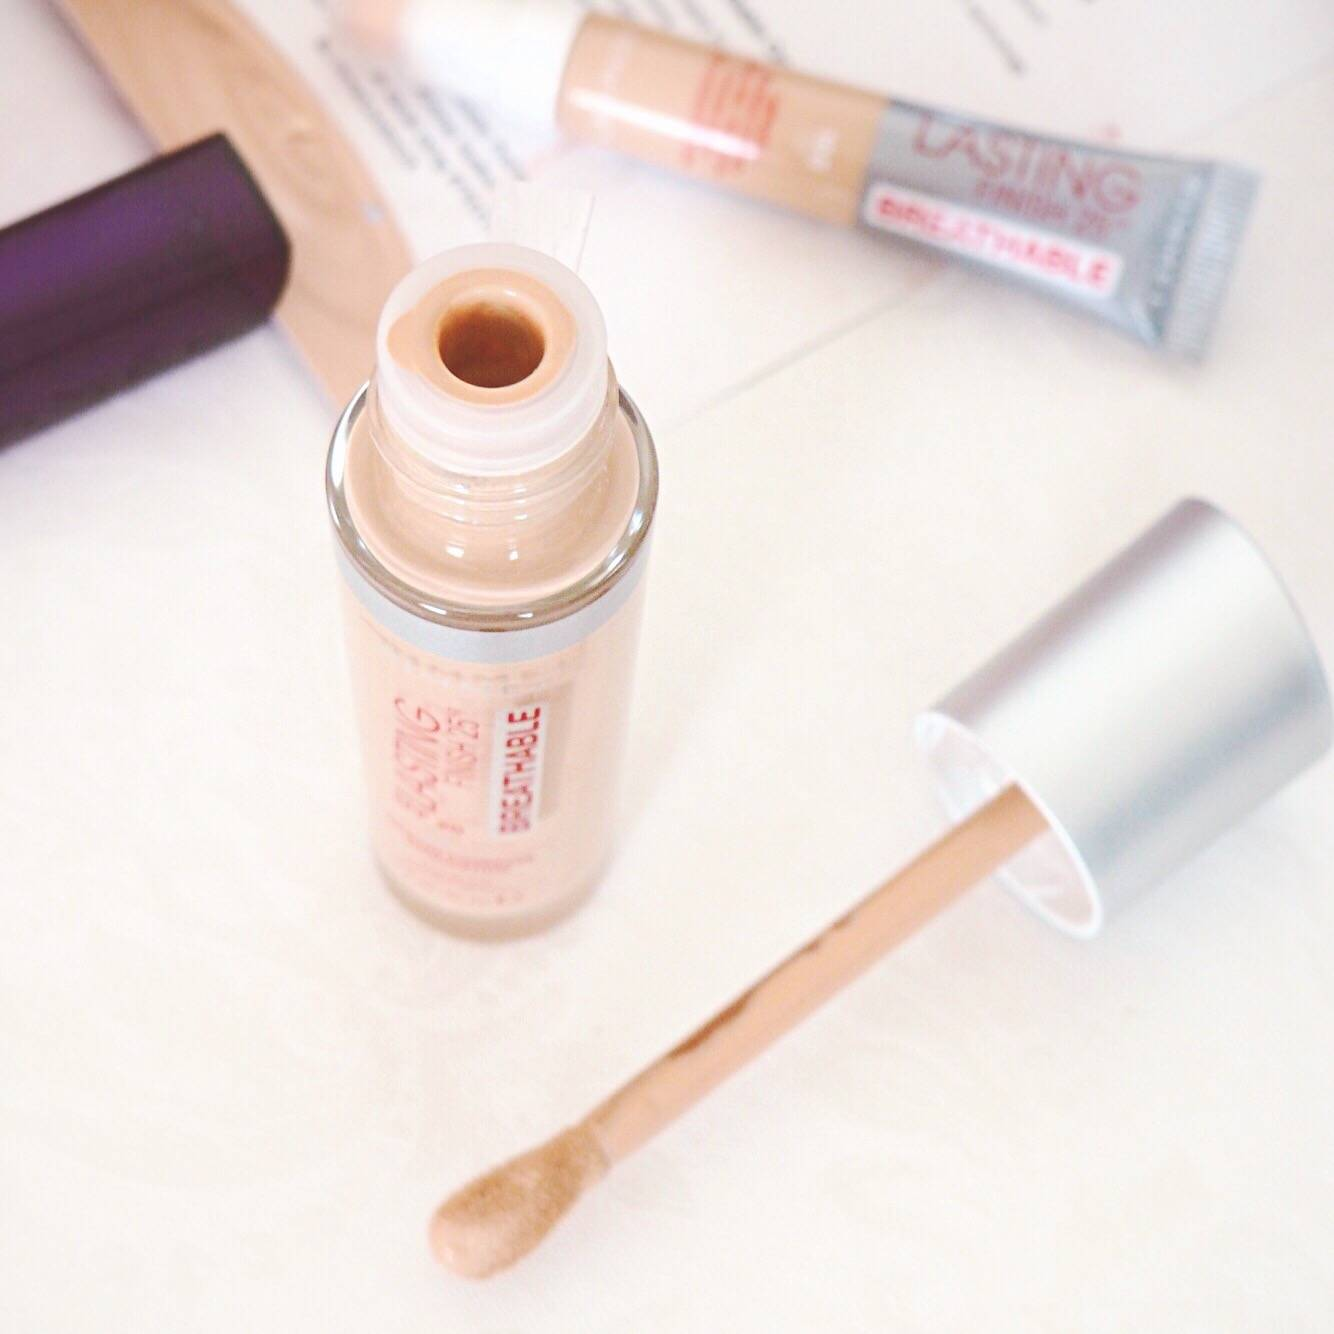 Rimmel Long Lasting Breathable Foundation Review